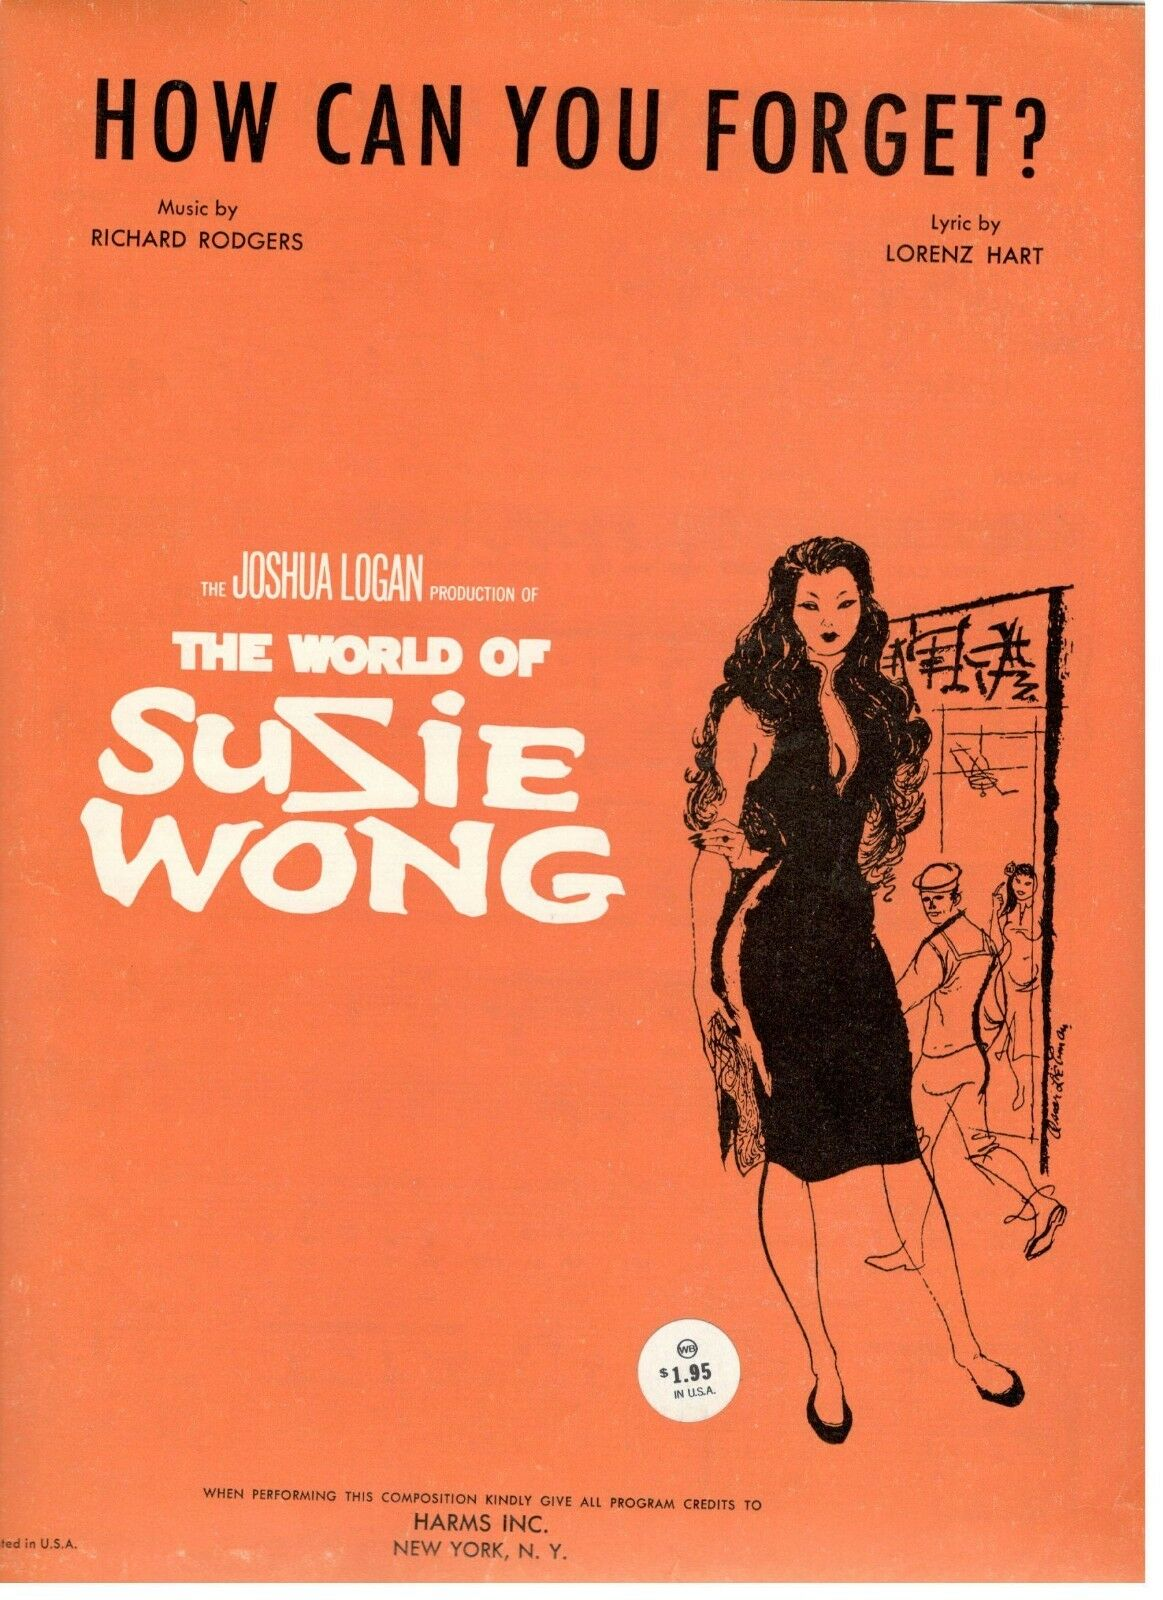 HOW CAN YOU FORGET SHEET MUSIC-THE WORLD OF SUSIE WONG-1938-BRAND NEW ON SALE